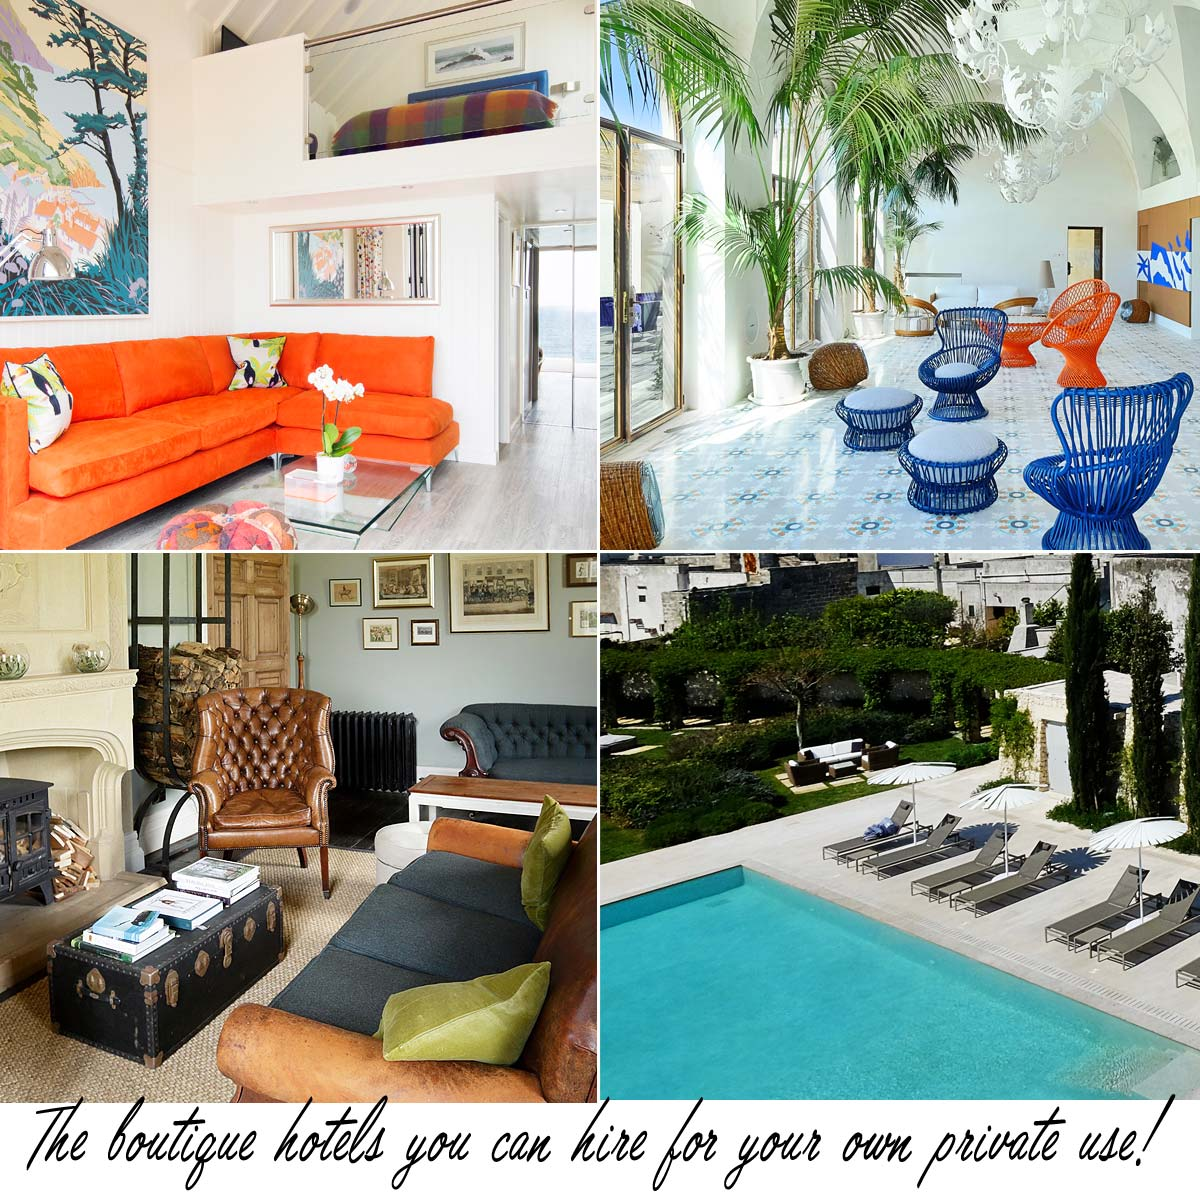 Boutique Hotels Ideal for House Parties & Exclusive Use Private Escapes 2